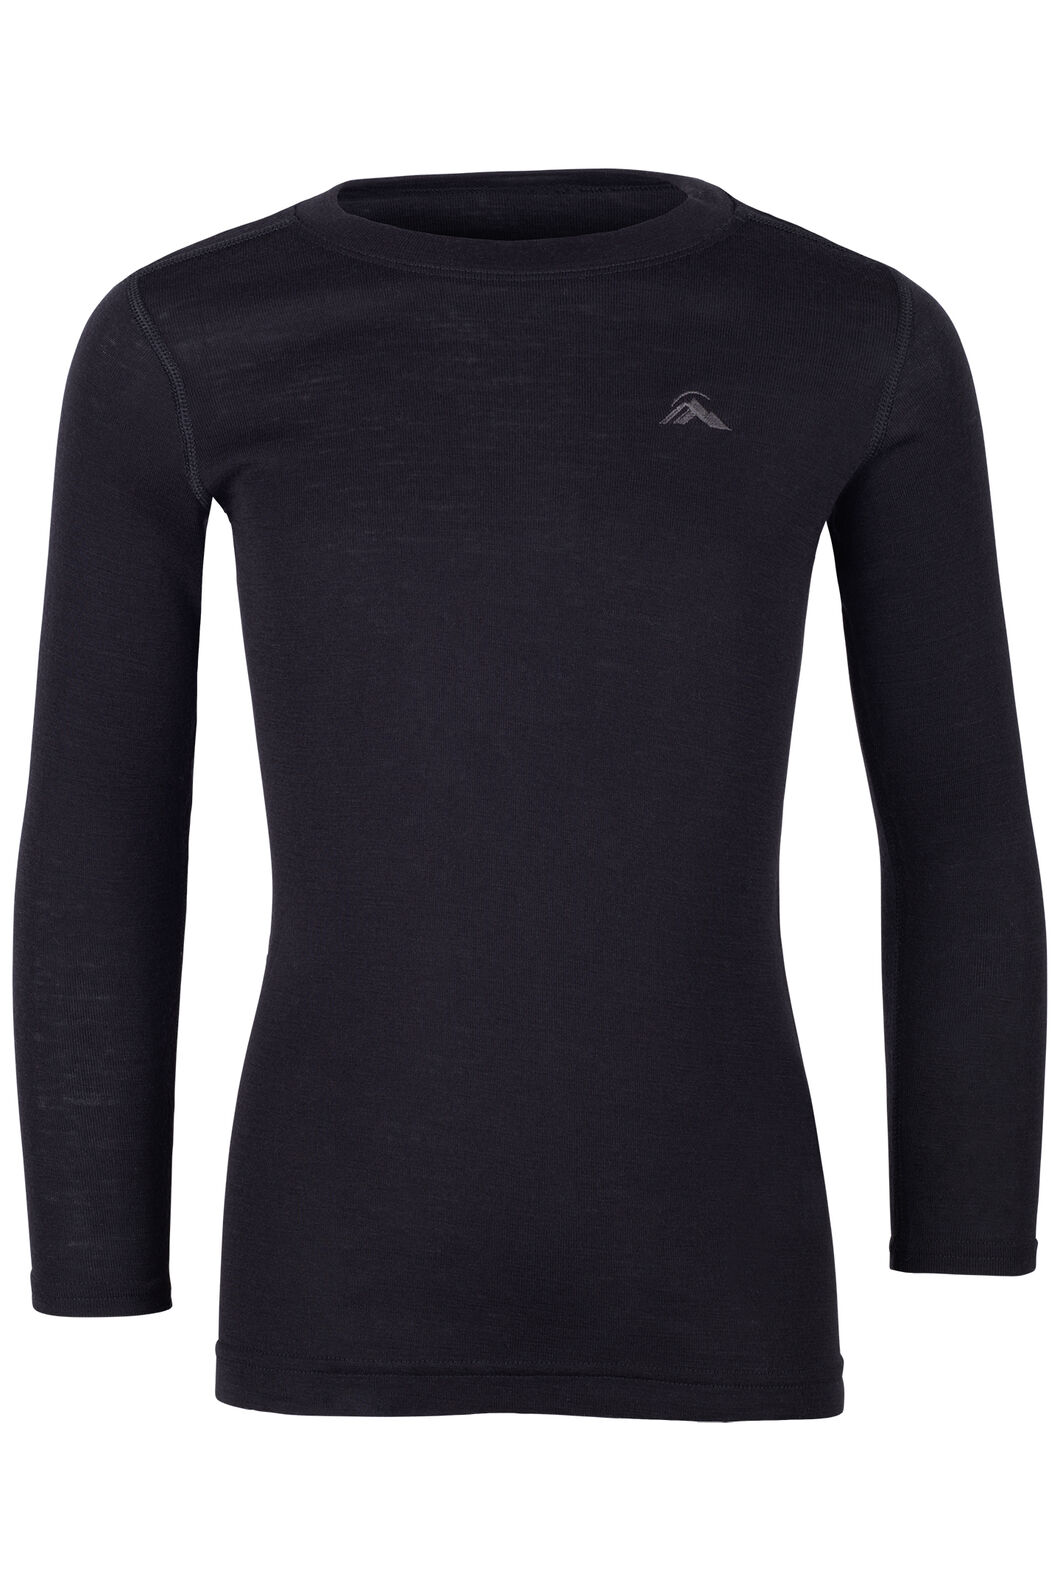 Macpac 220 Merino Long Sleeve Top — Kids', Black, hi-res